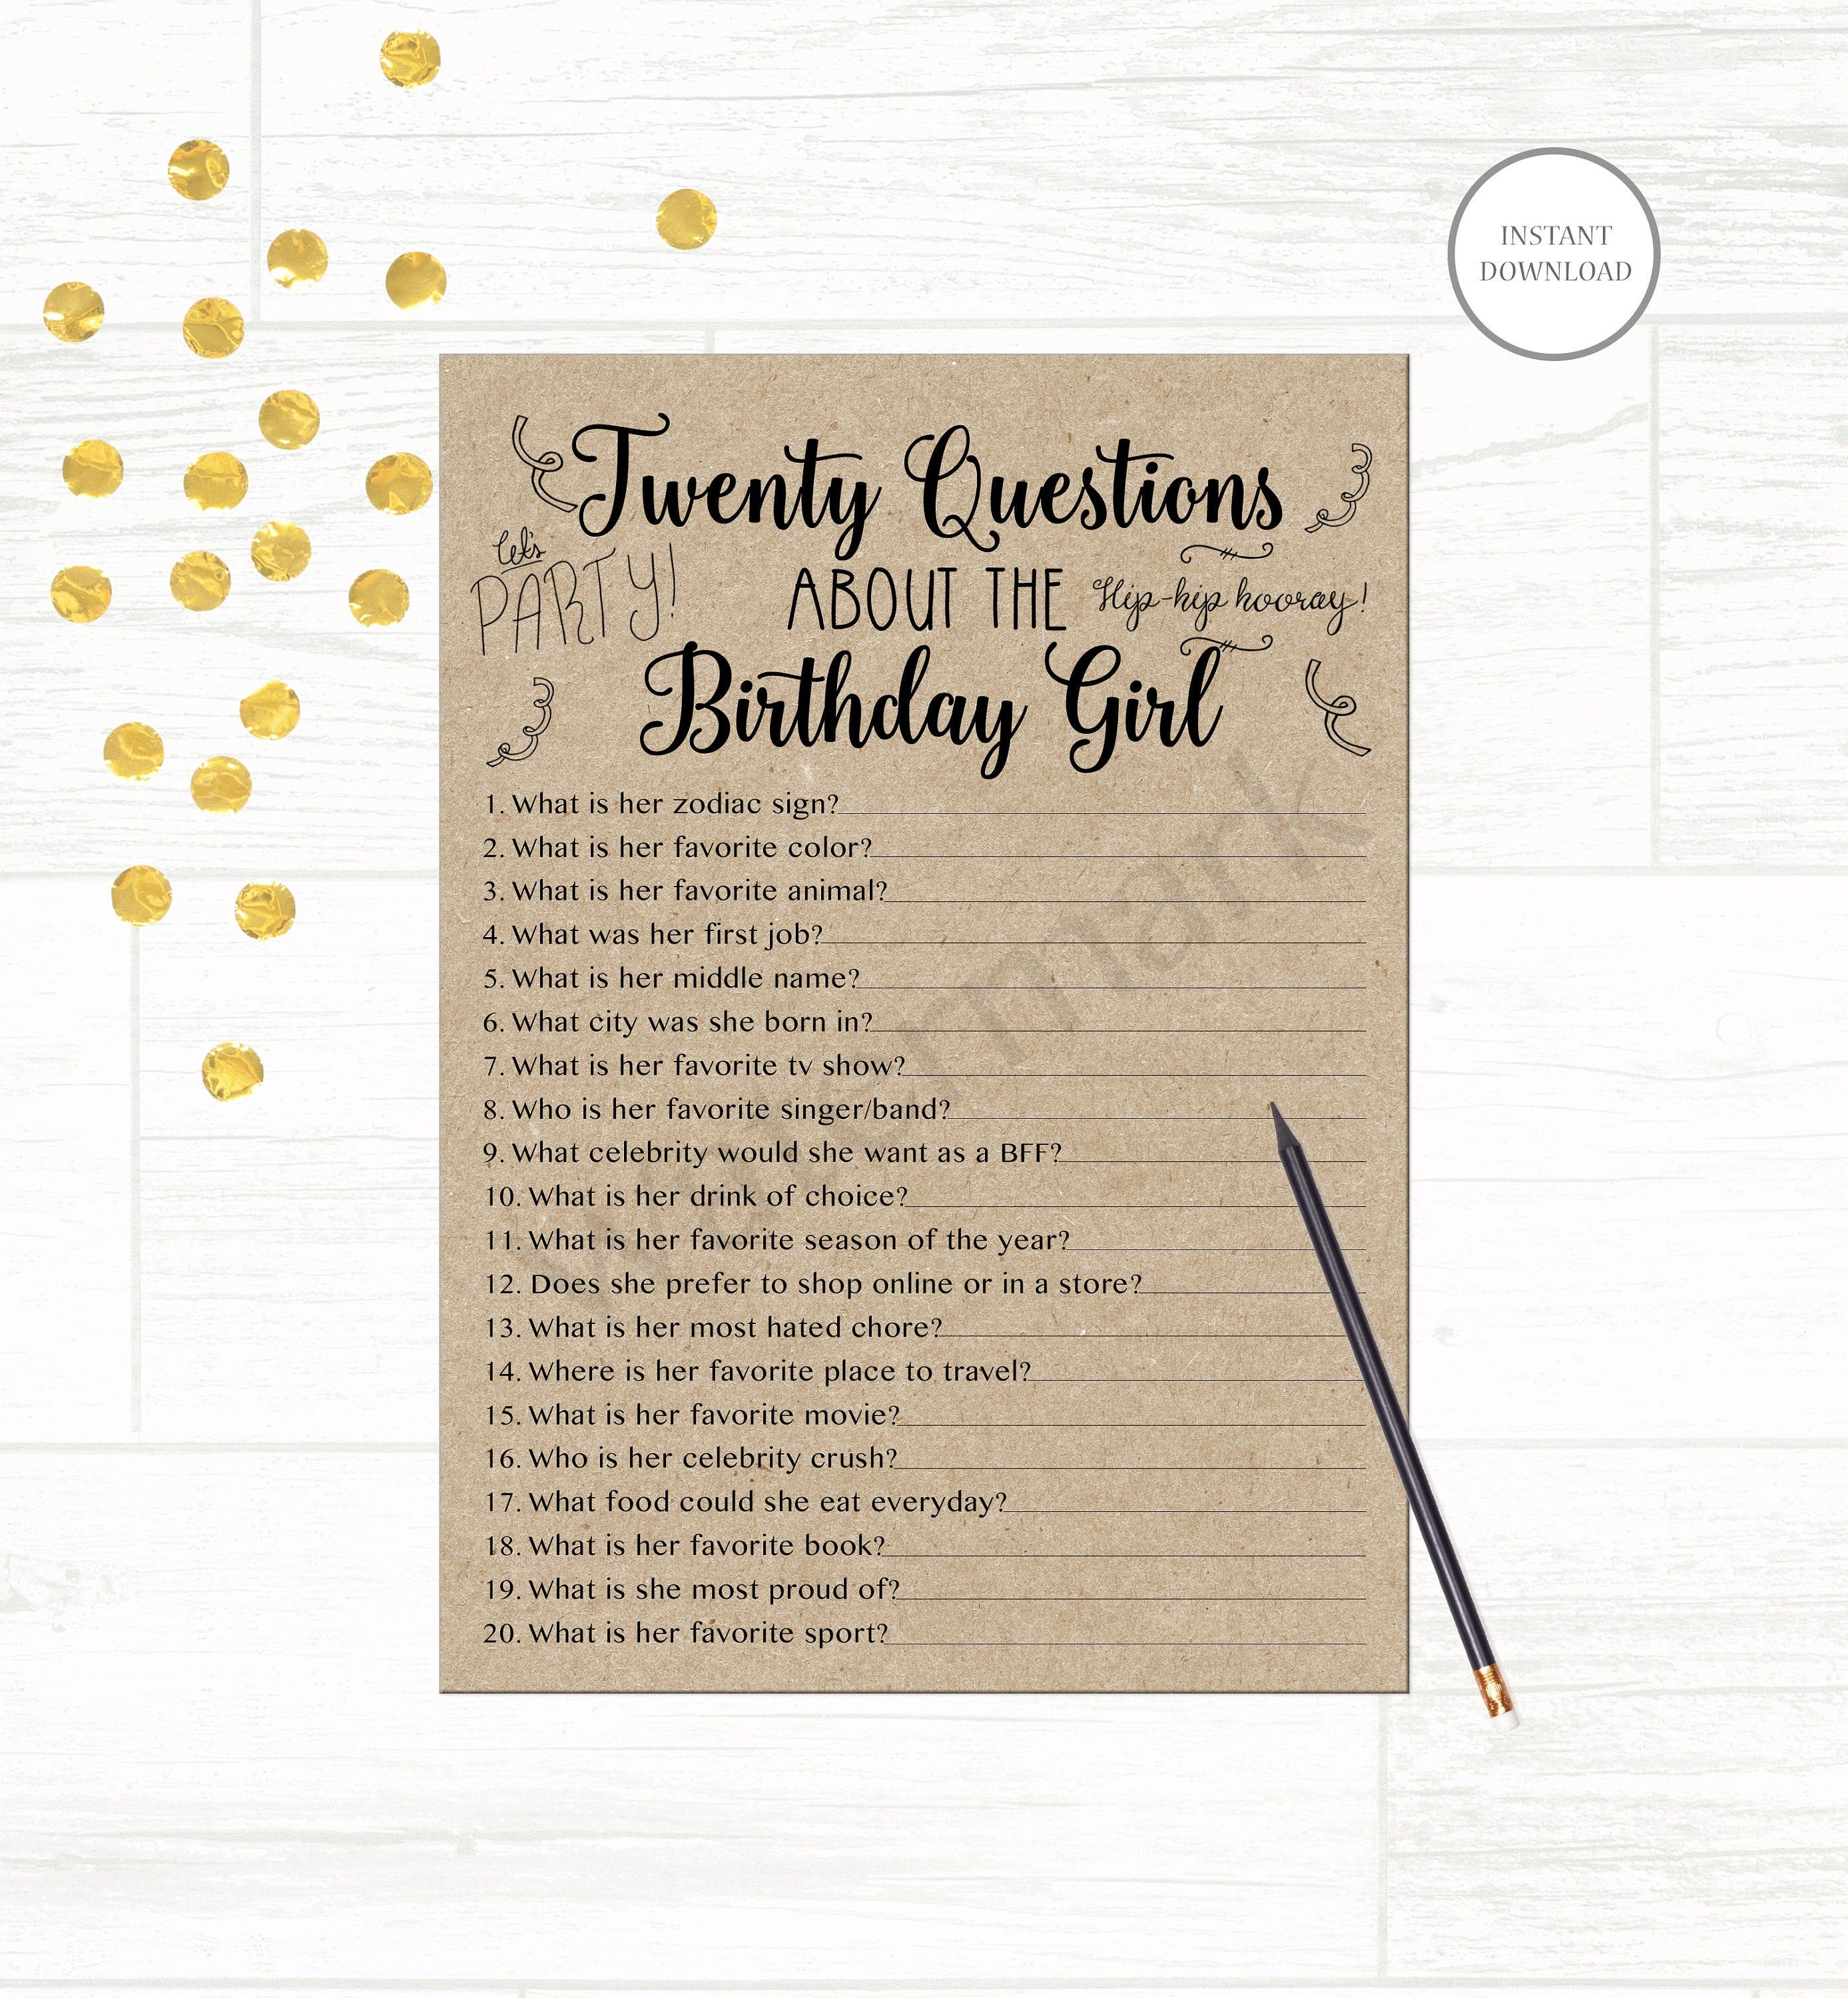 Party Game How Well Do You Know Birthday Girl NEW DESIGN NEW QUESTIONS